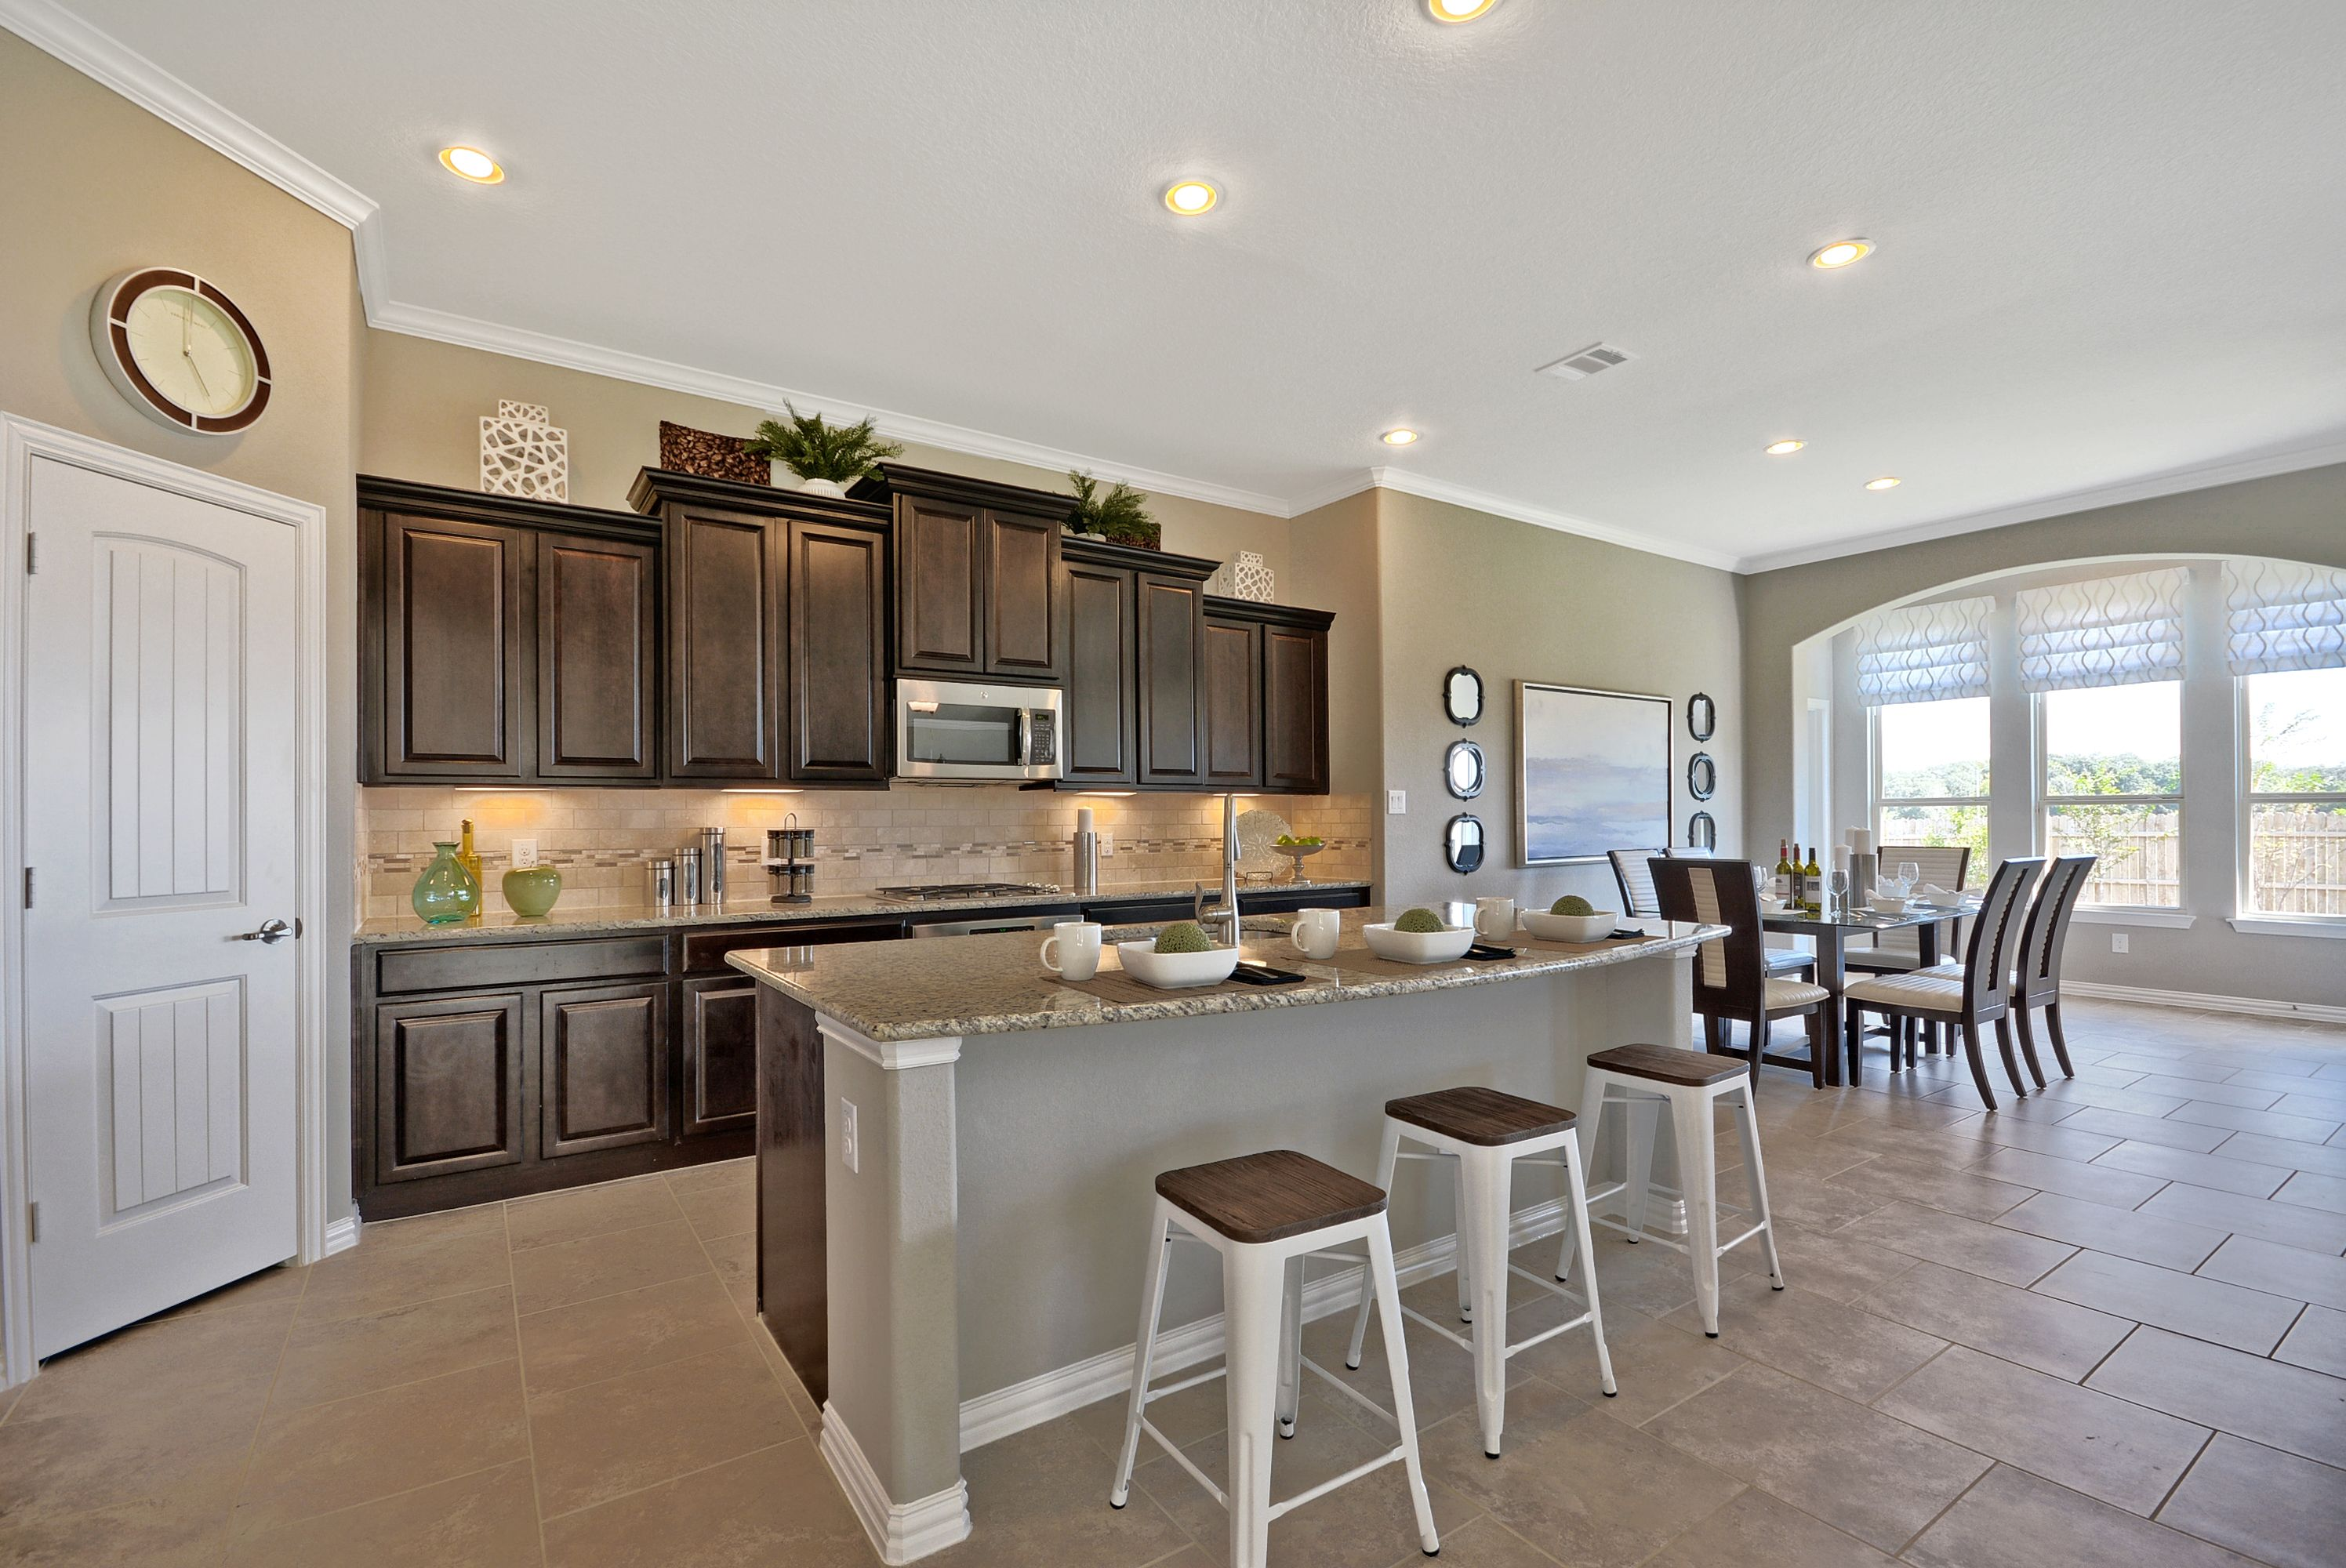 Are you FINE with a kitchen and dining room BINED